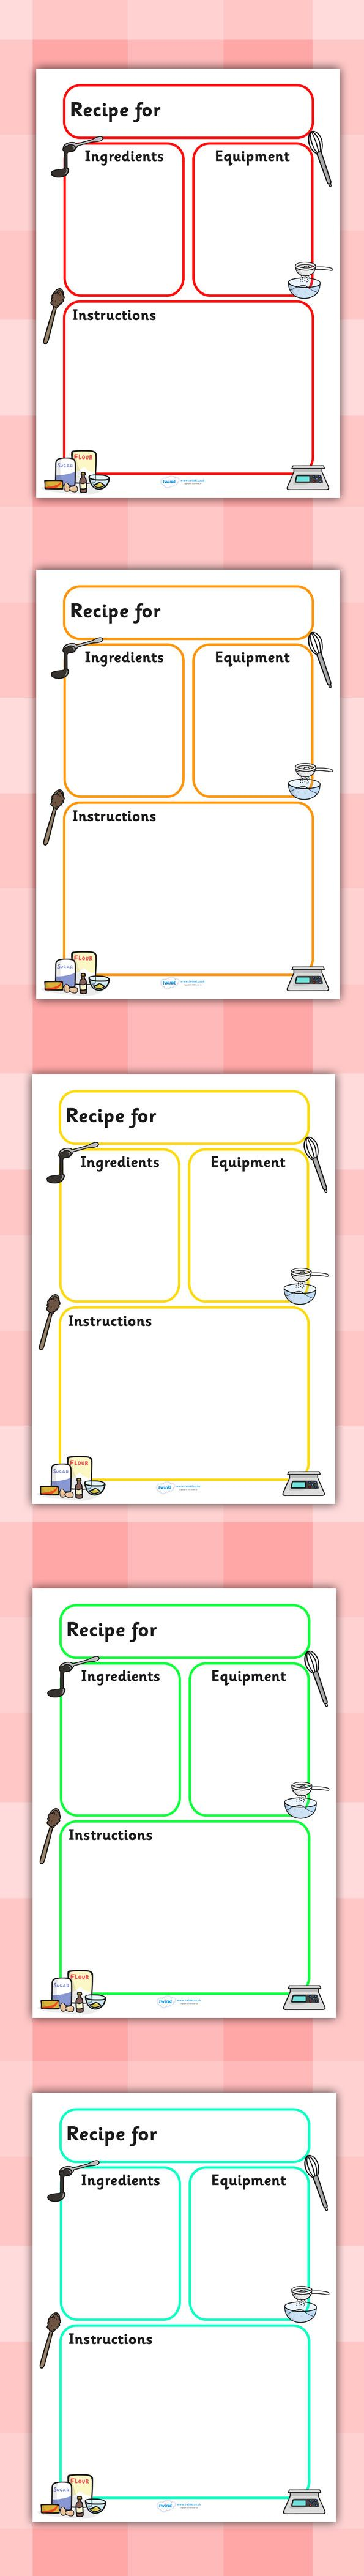 Twinkl Resources >> Recipe Template >> Printable resources for Primary, EYFS, KS1 and SEN.  Thousands of classroom displays and teaching aids! Topics, Recipe, Cooking, Templates